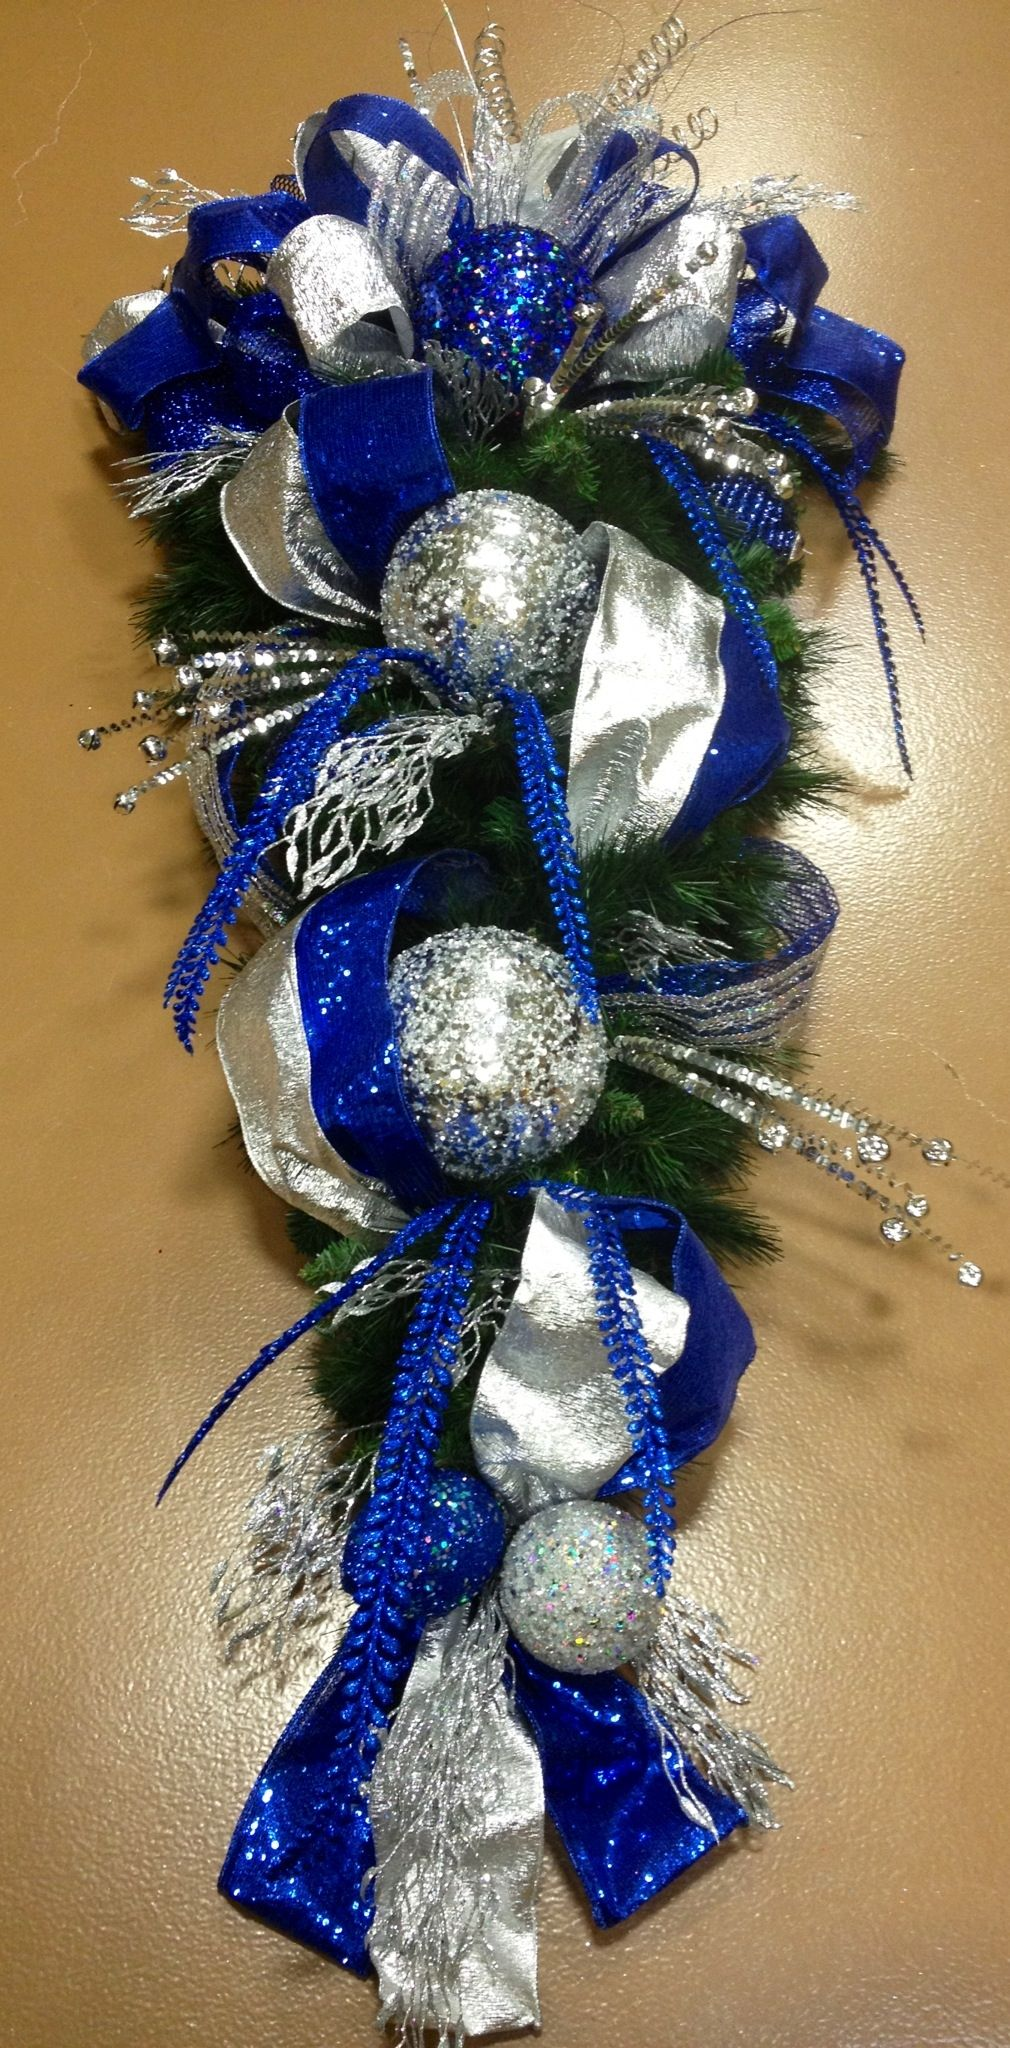 Best Christmas Large Teardrop For The Front Door In Royal Blue 400 x 300